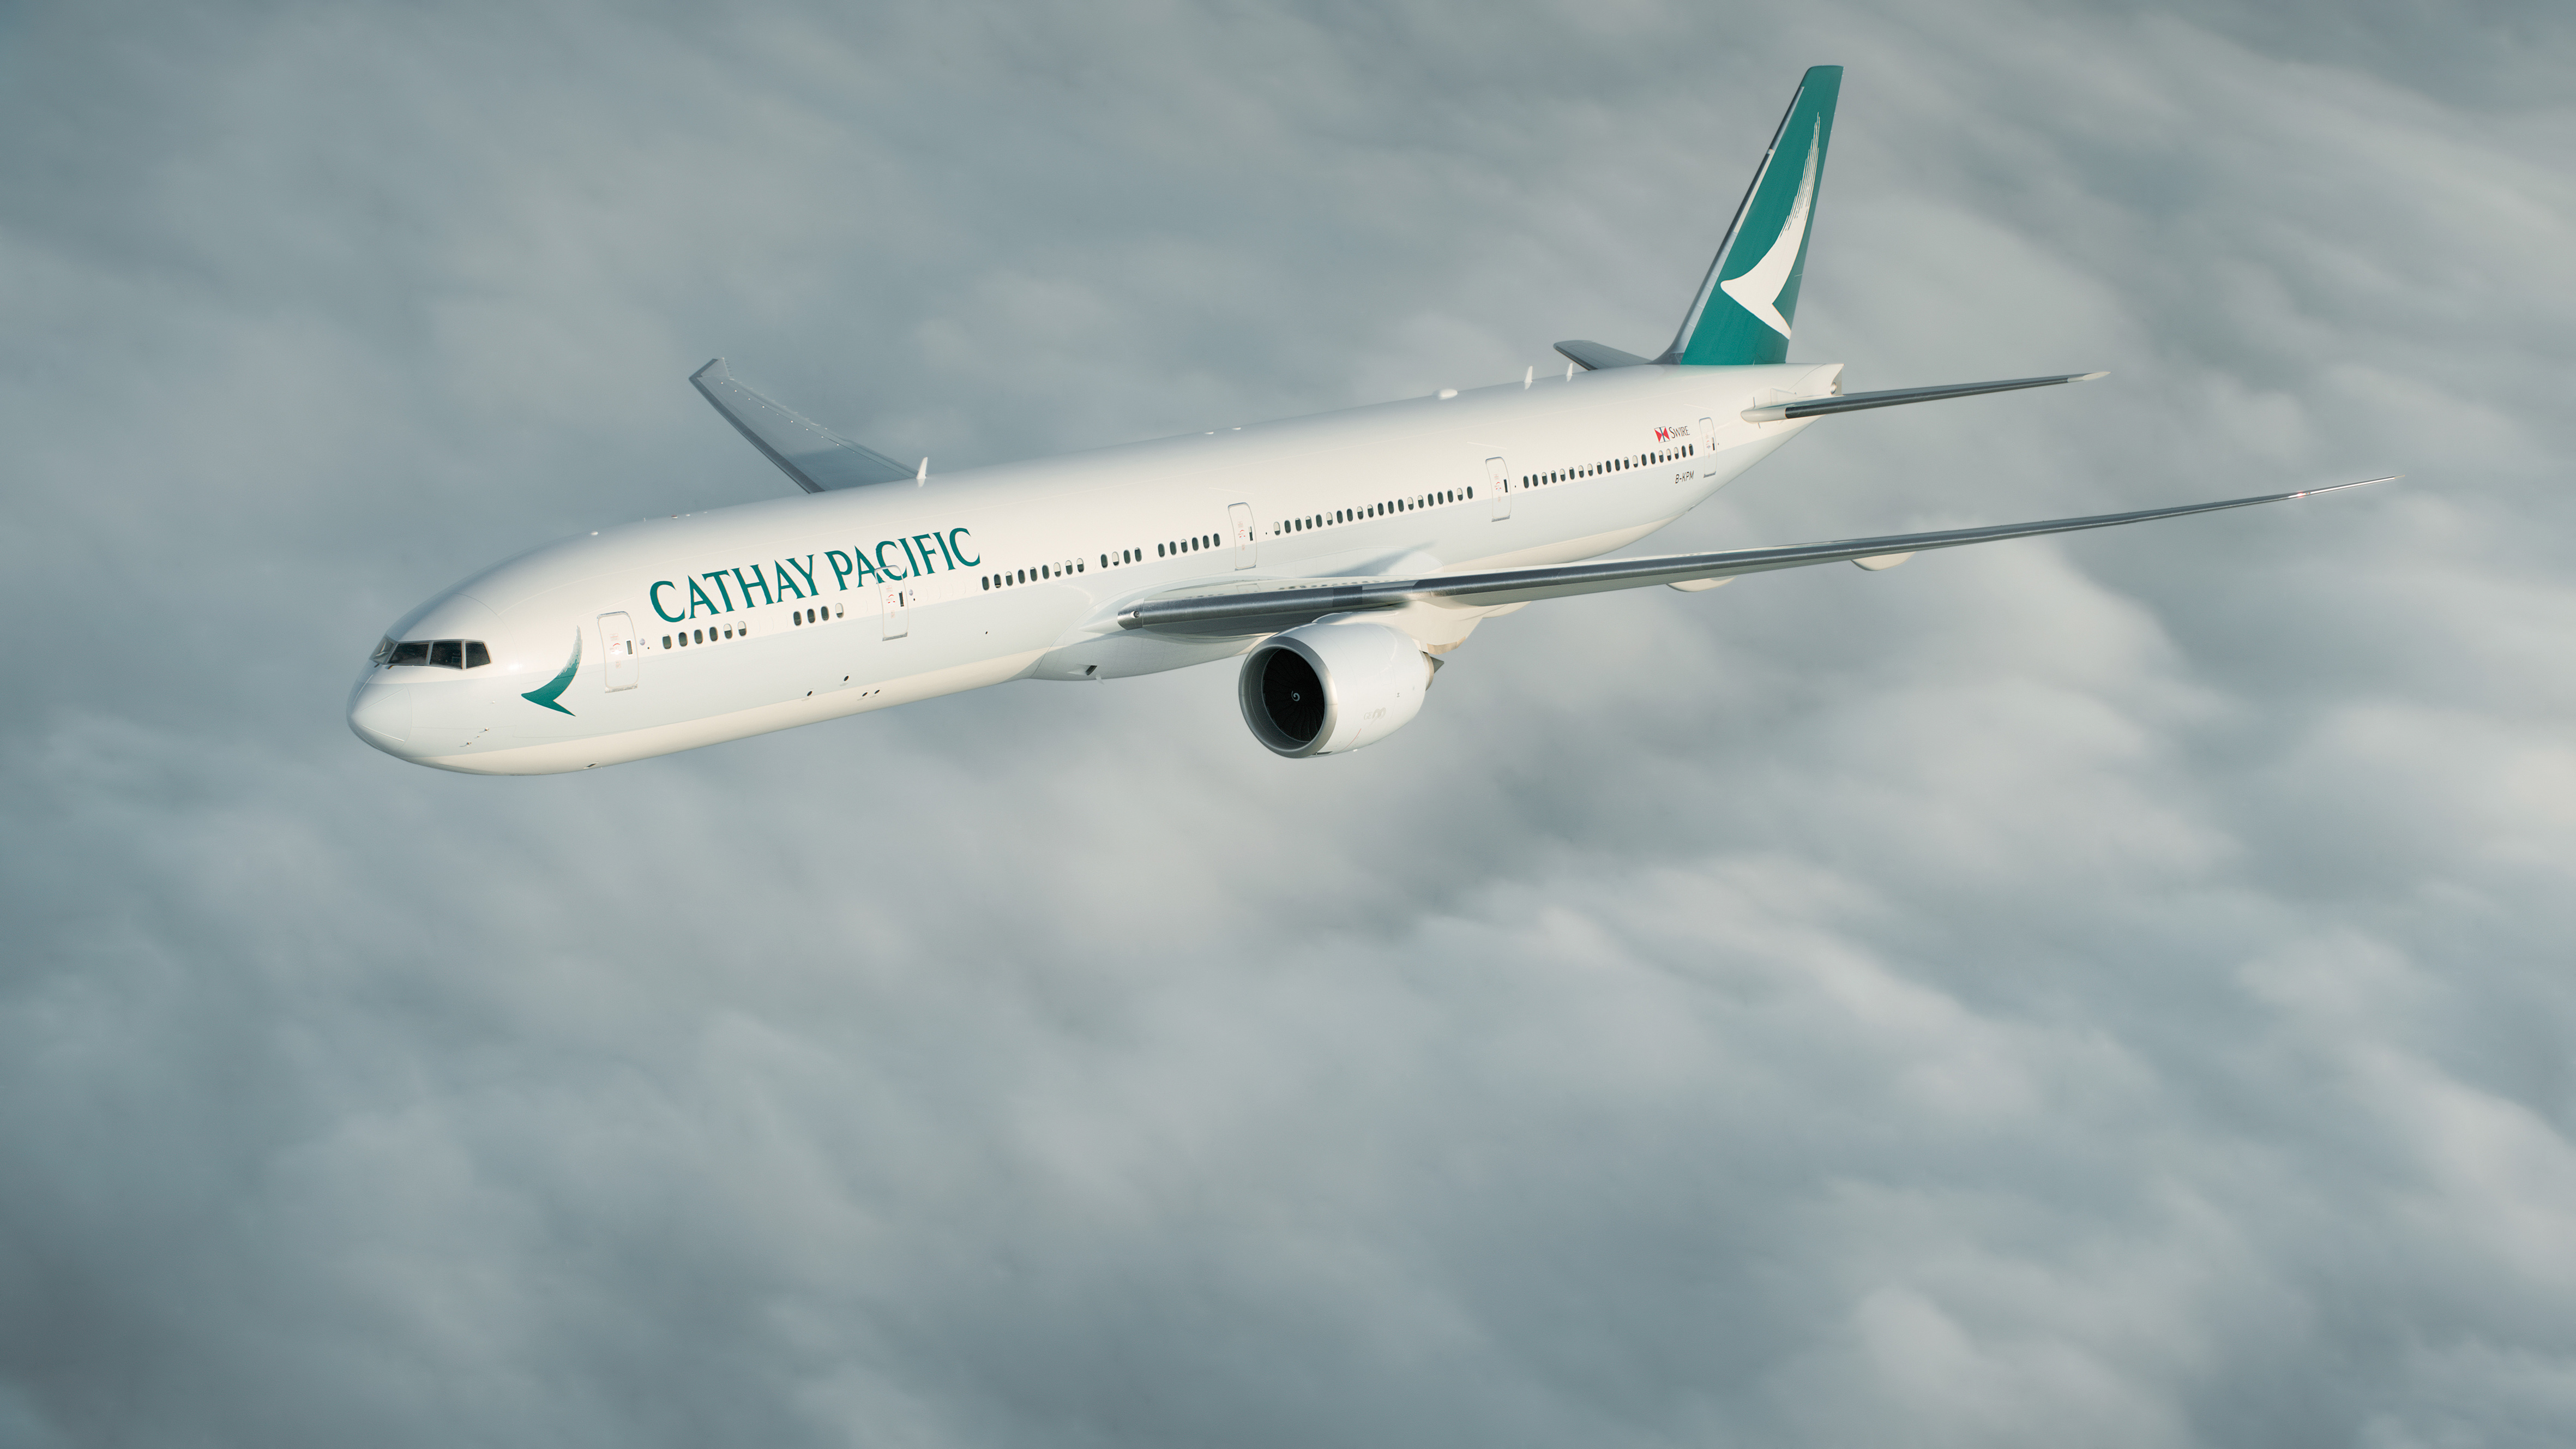 Cathay Pacific Reveal New Livery To Match New Brand